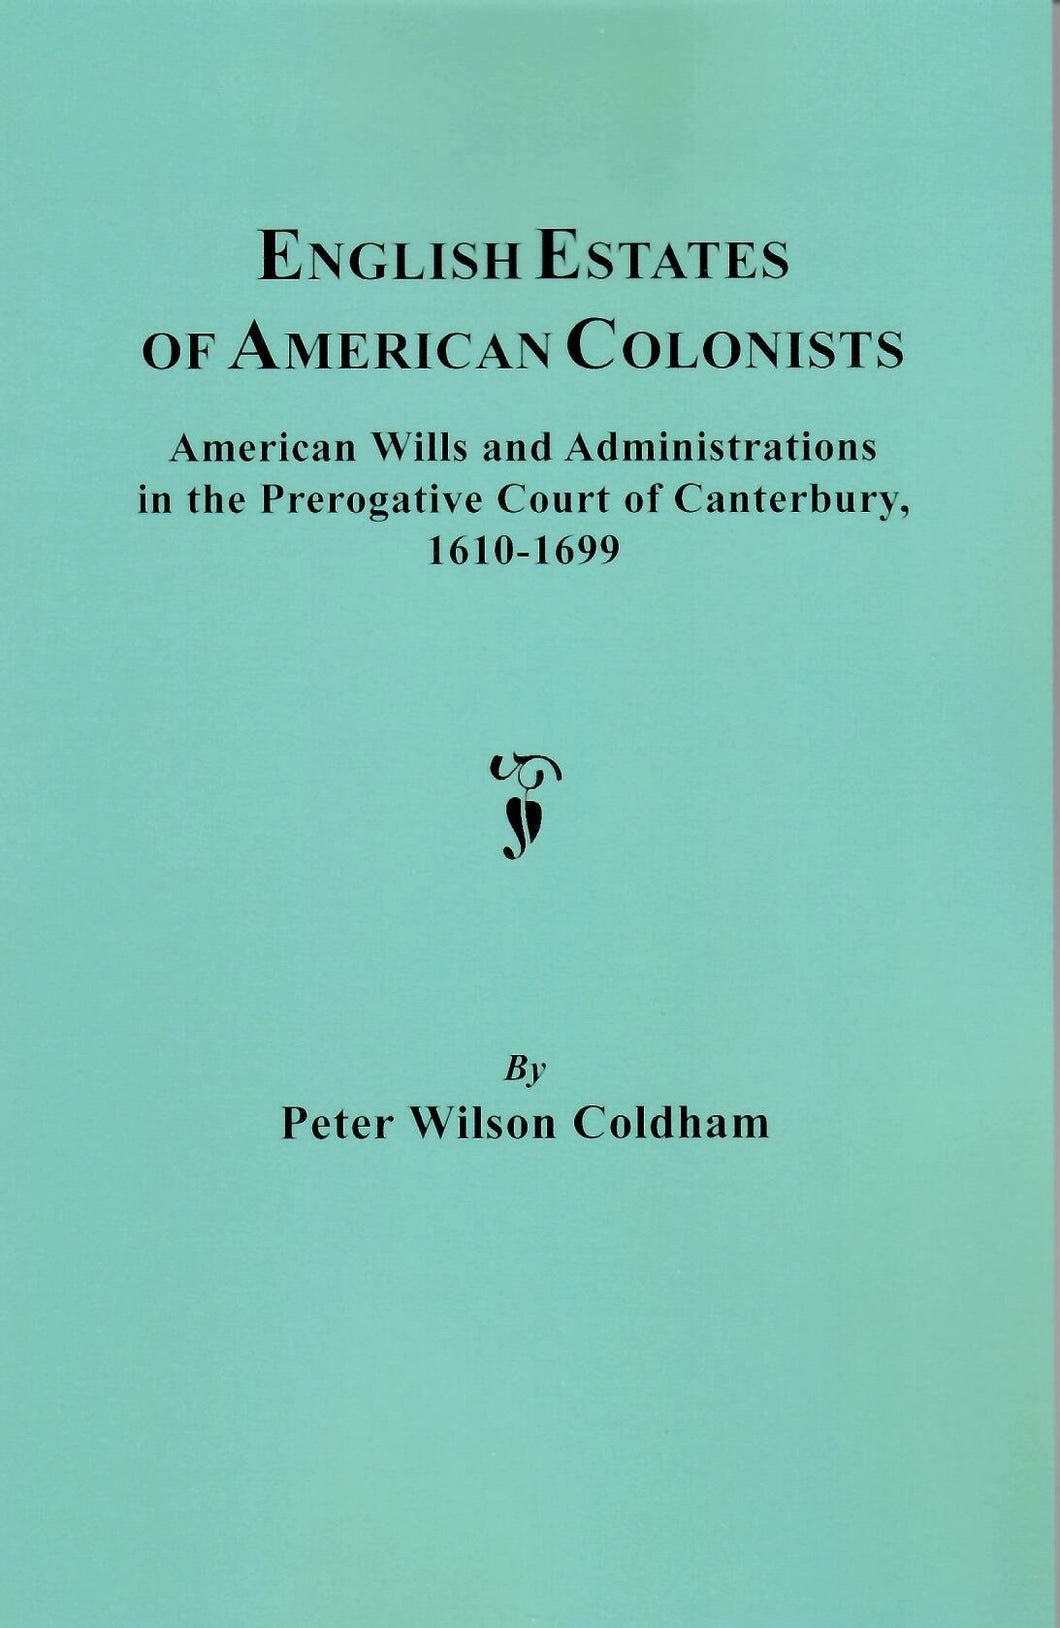 English Estates of American Colonists, 1610-1699